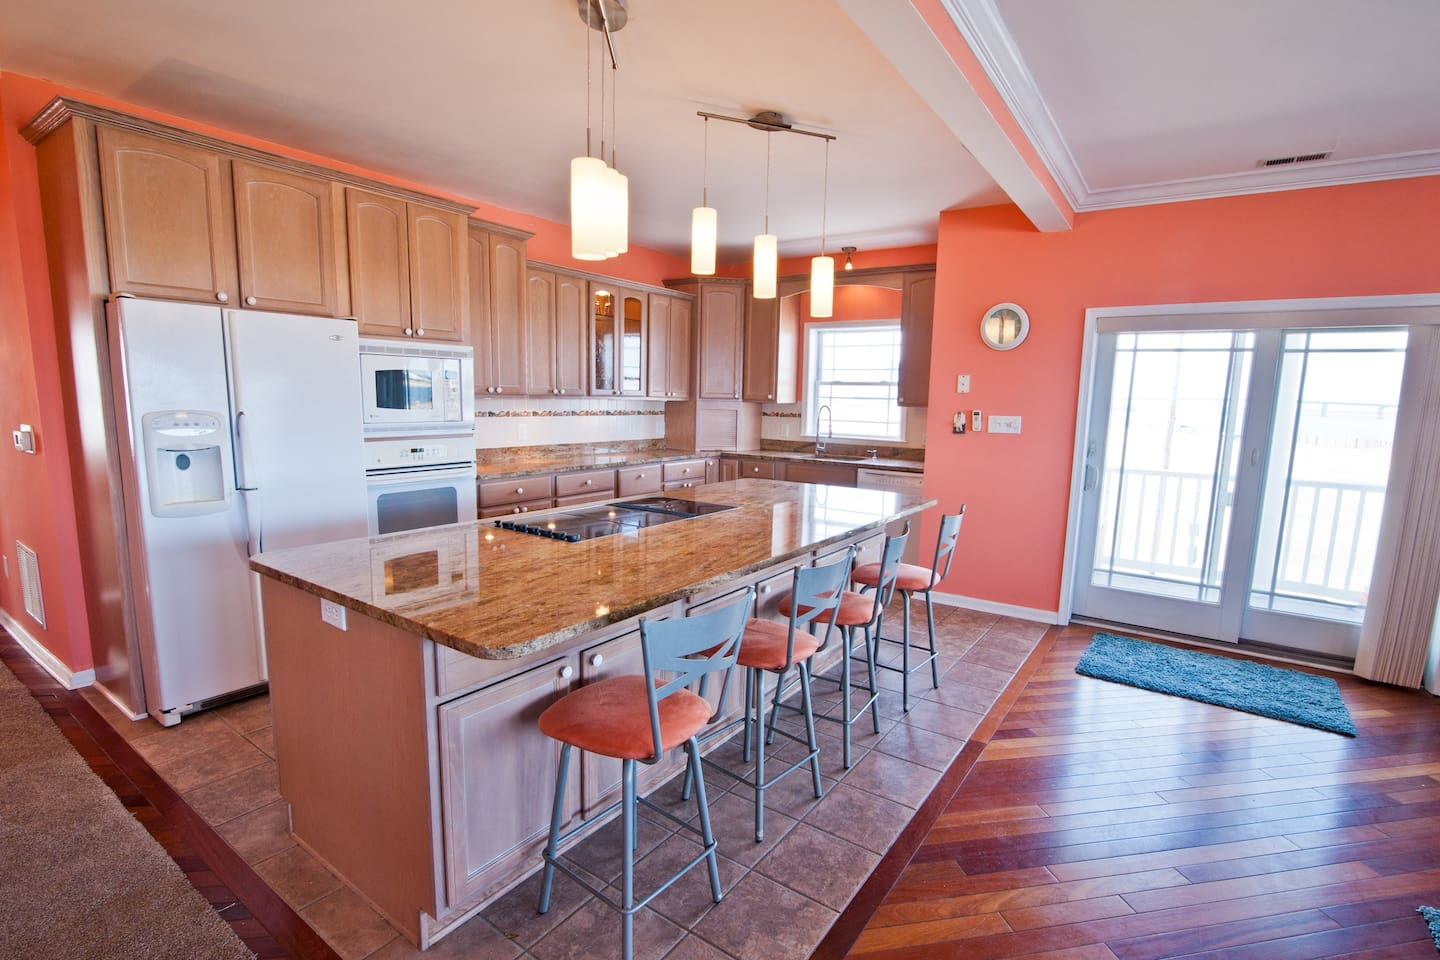 ❤️ Experience for yourself our Gourmet Kitchen with granite countertops and beautiful lighting! Take advantage of the HUGE kitchen island for your tasty treats and drinks! The kitchen is Stocked with Everything you could need!